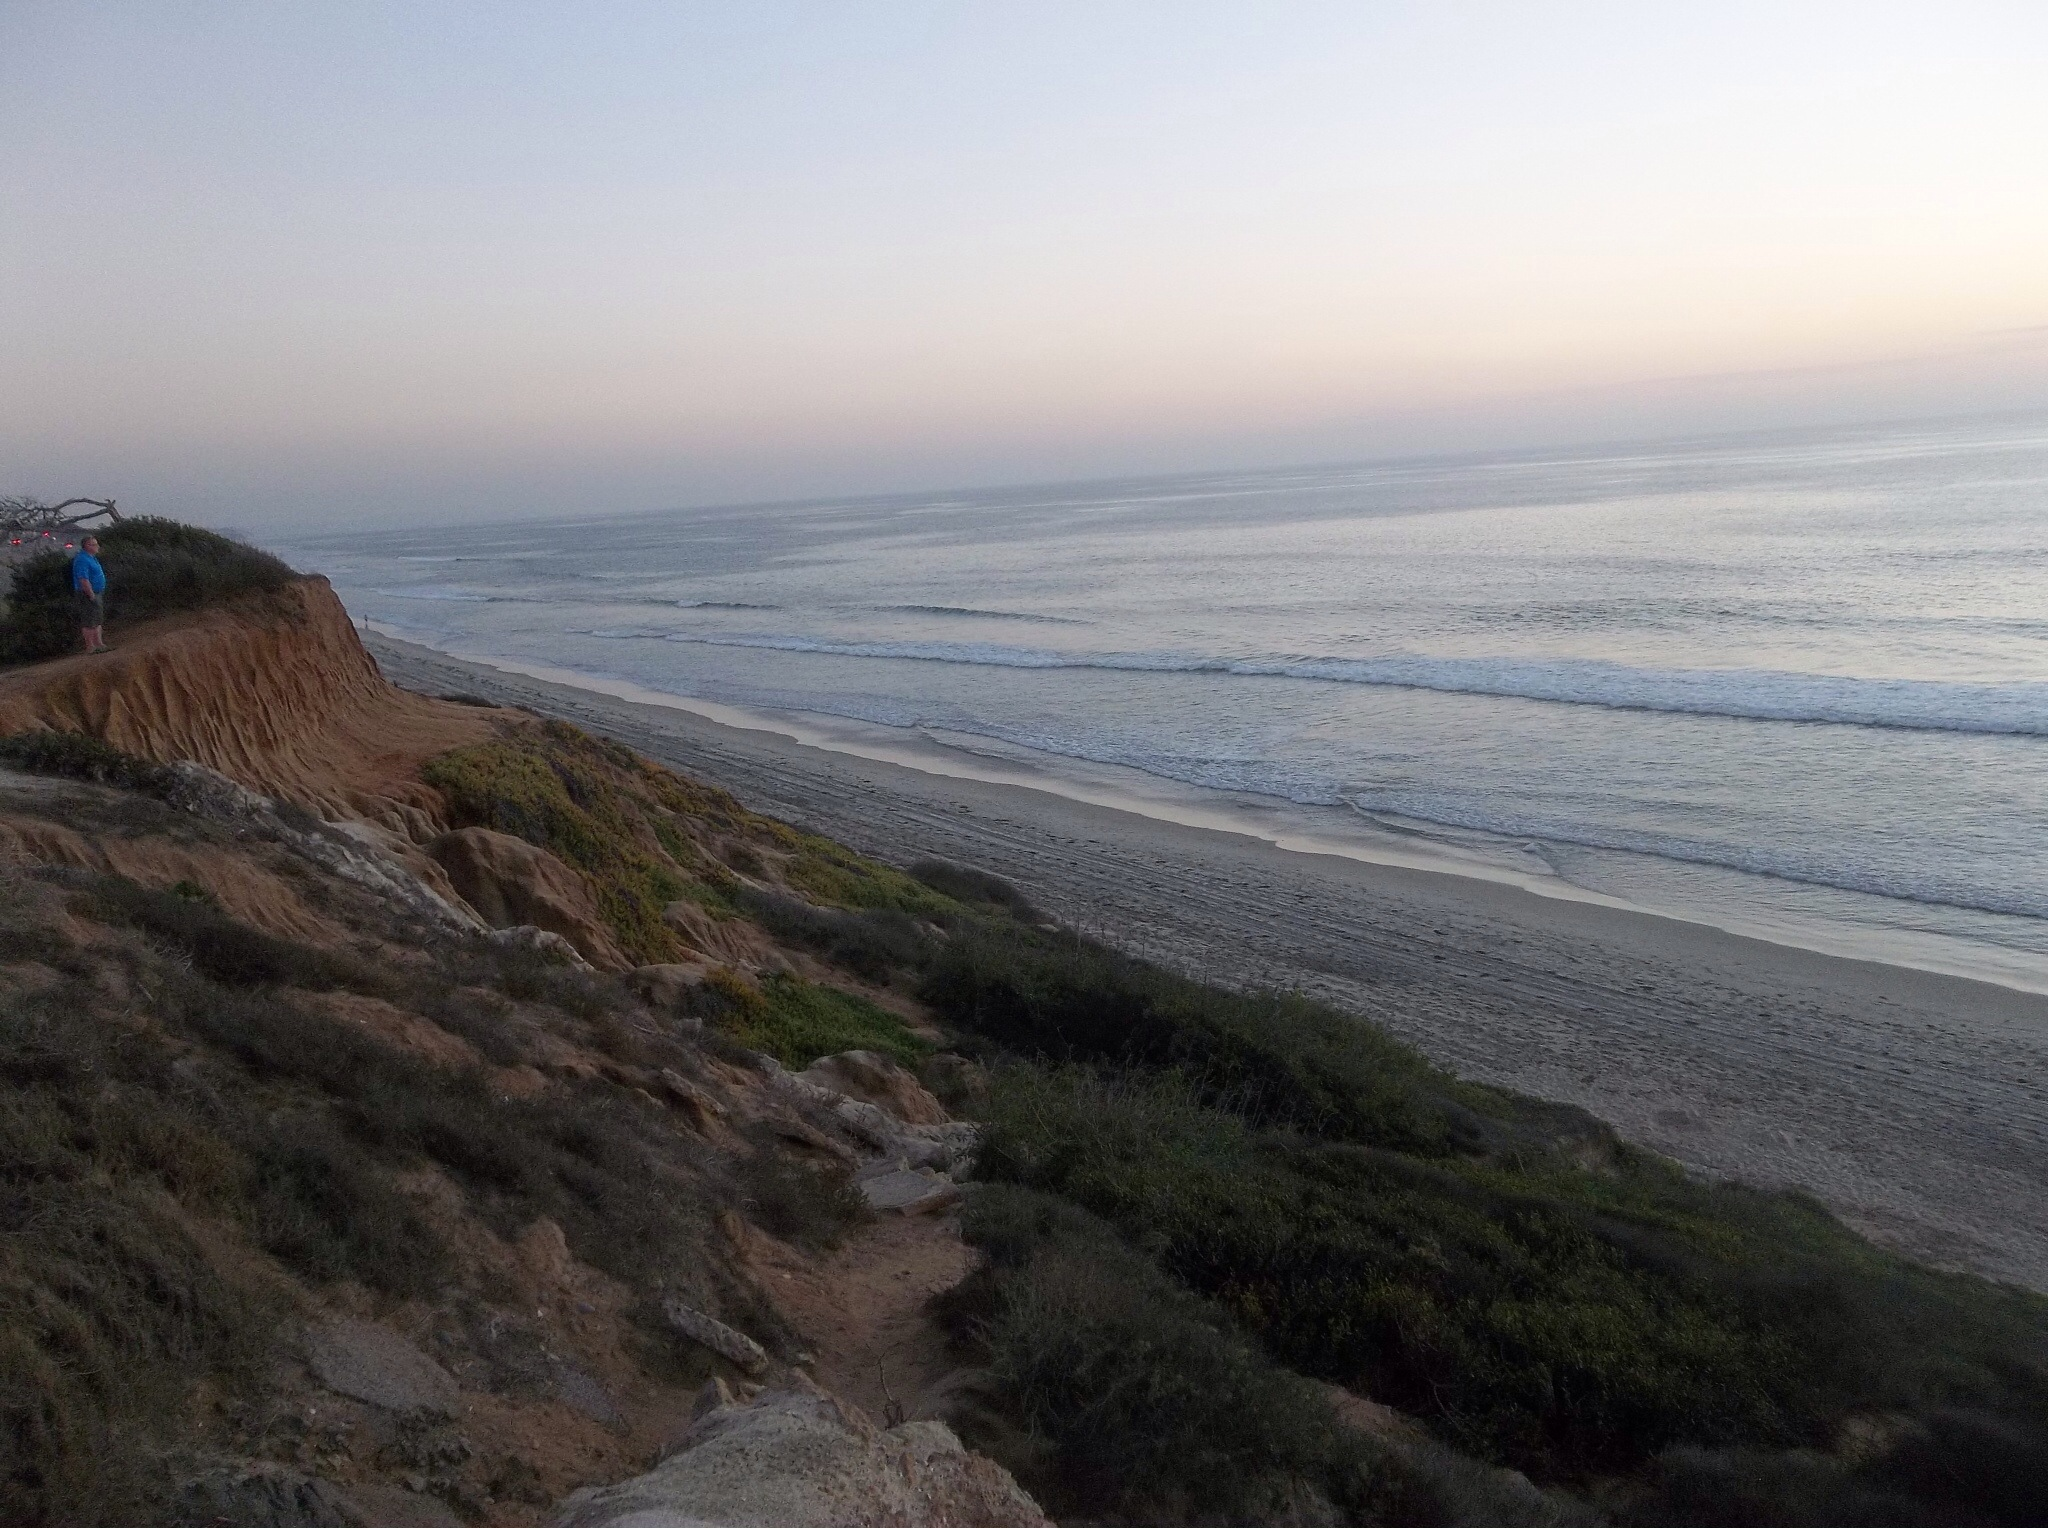 View from Carlsbad cliffs